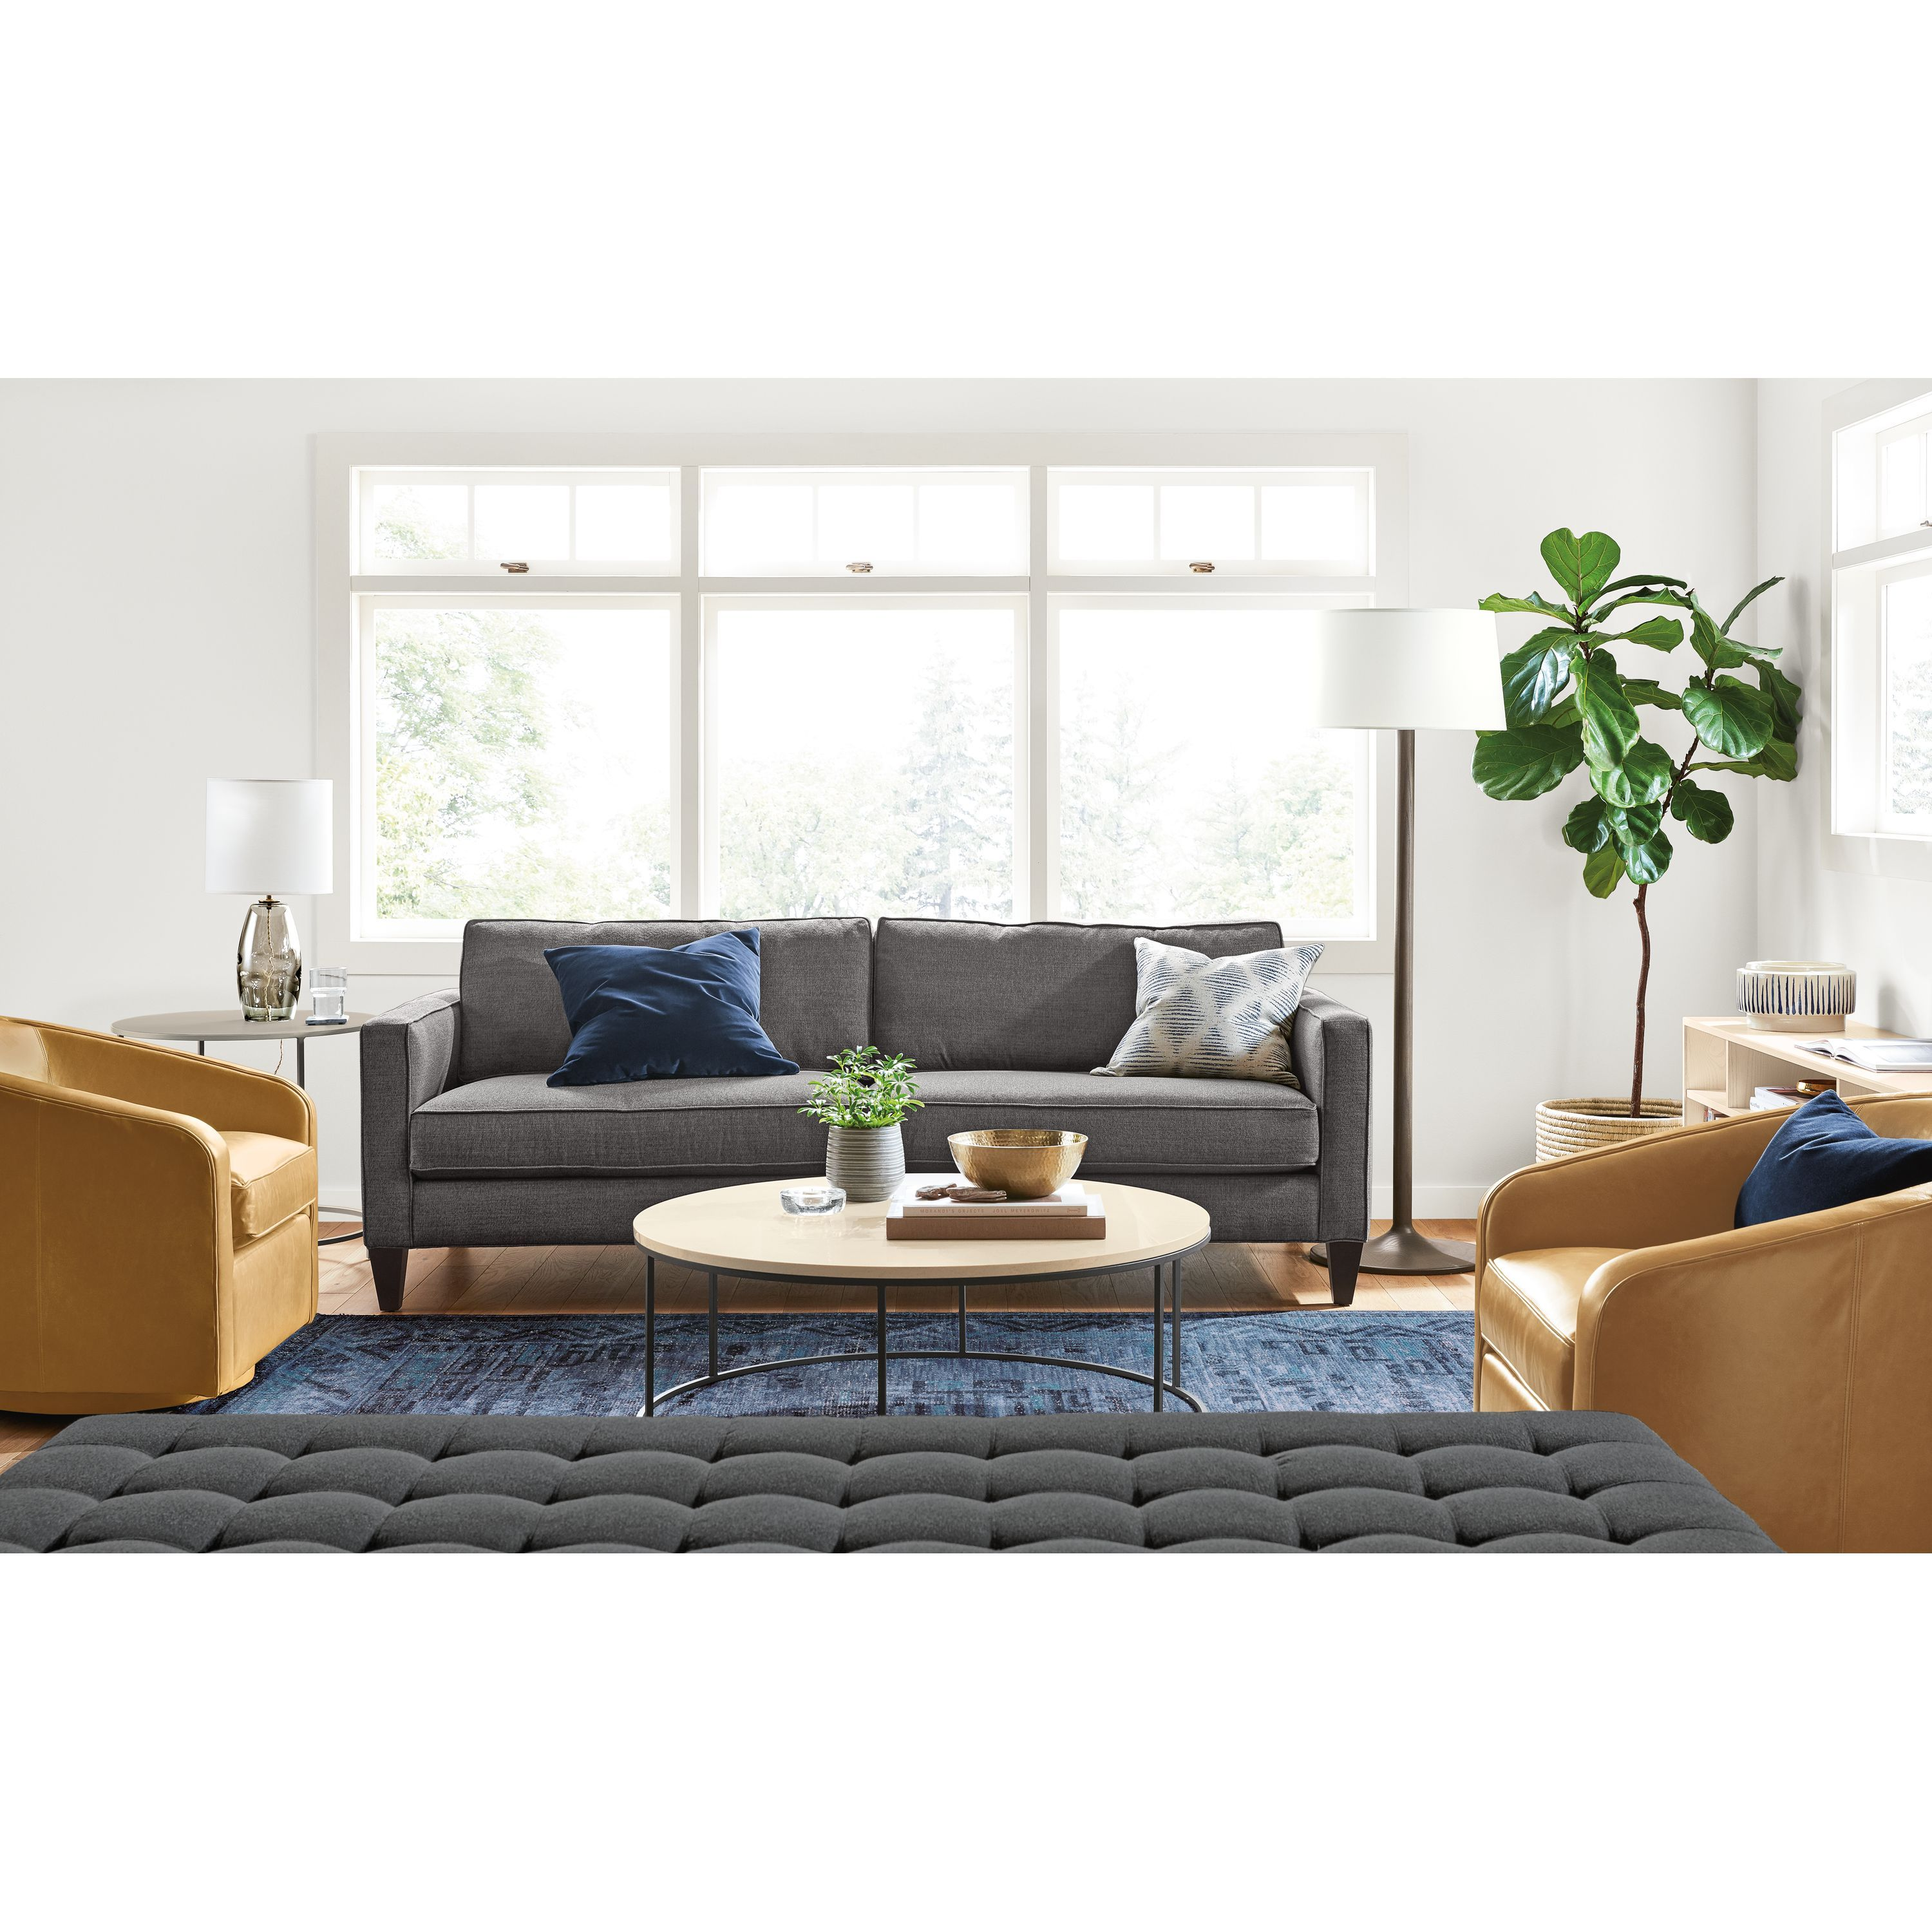 Room Board Harrison Sofas Products Living Room Room Living